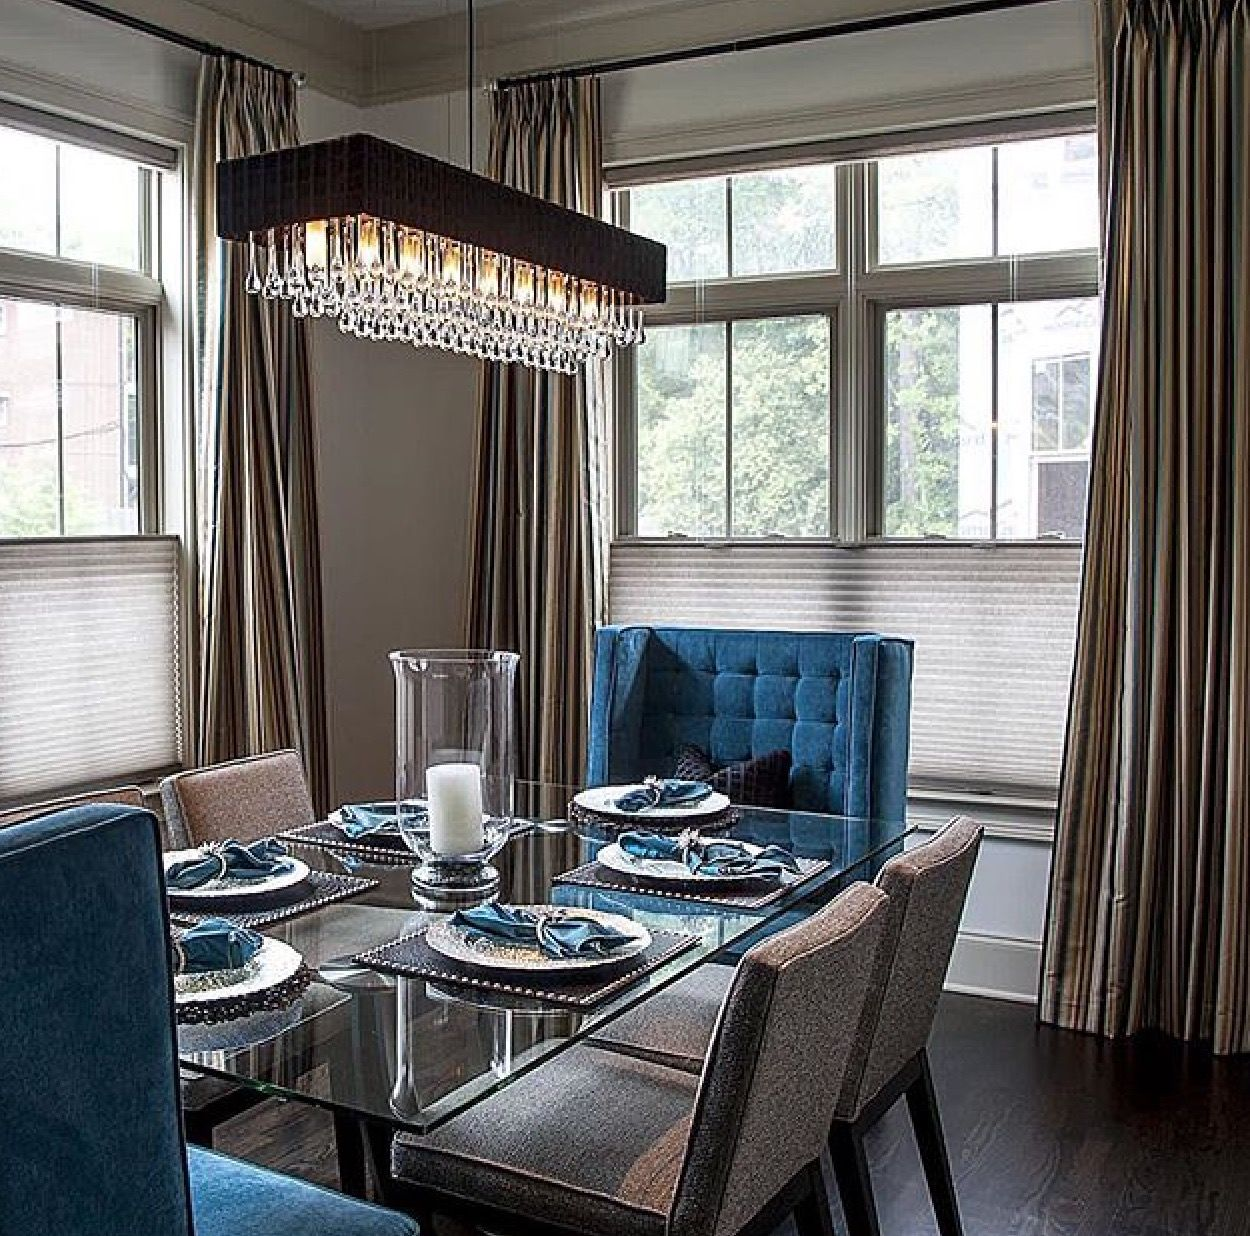 Home interior design royal pin by india shaye on home beautiful  pinterest  interiors